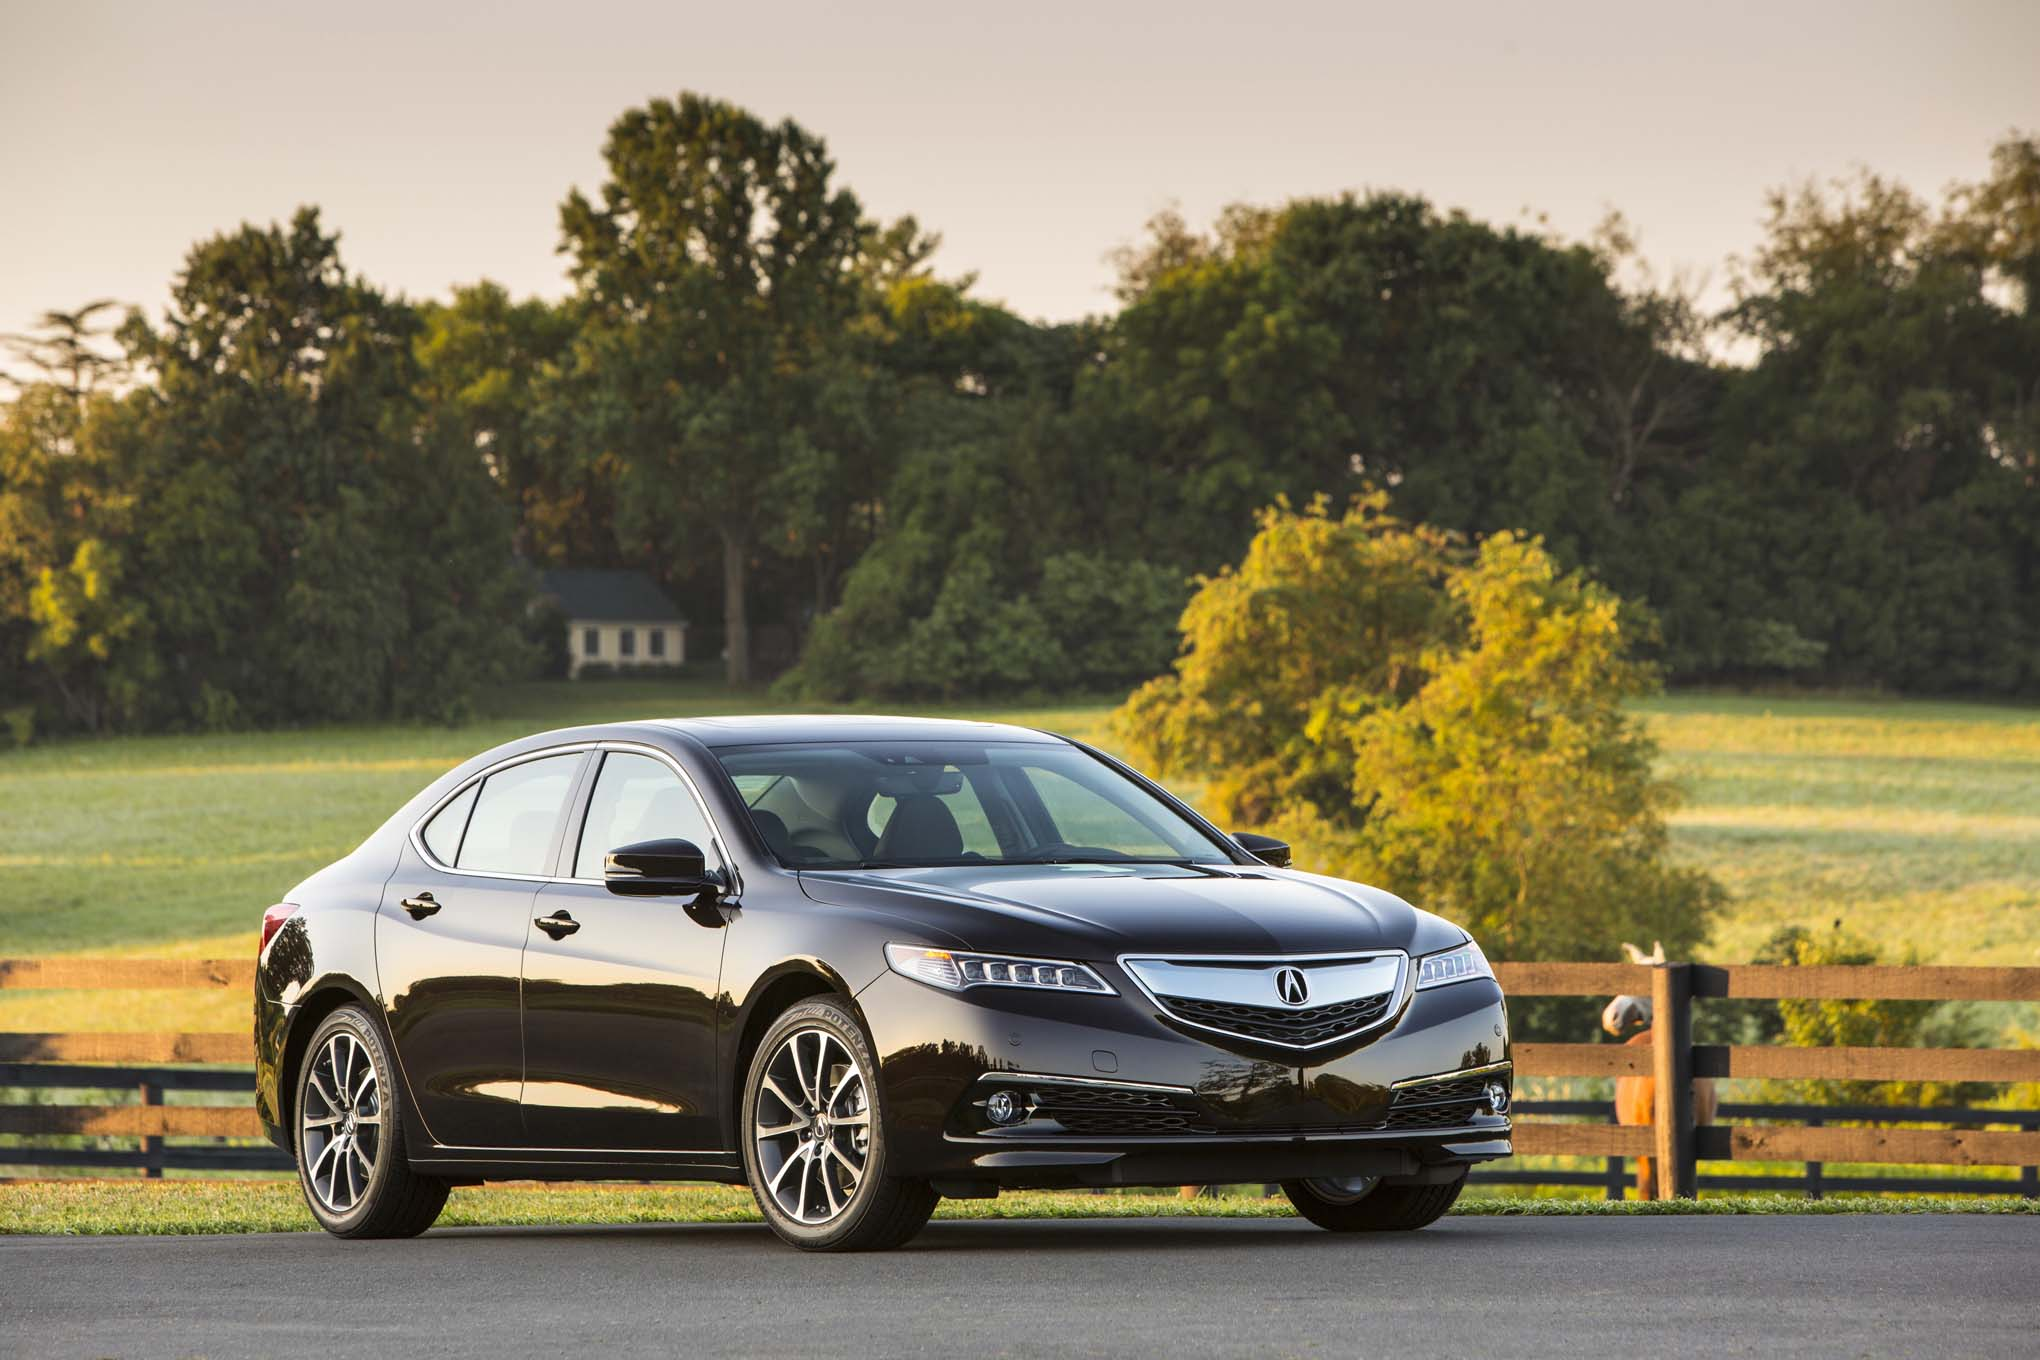 2017 Acura TLX 3.5 SH-AWD One Week Review